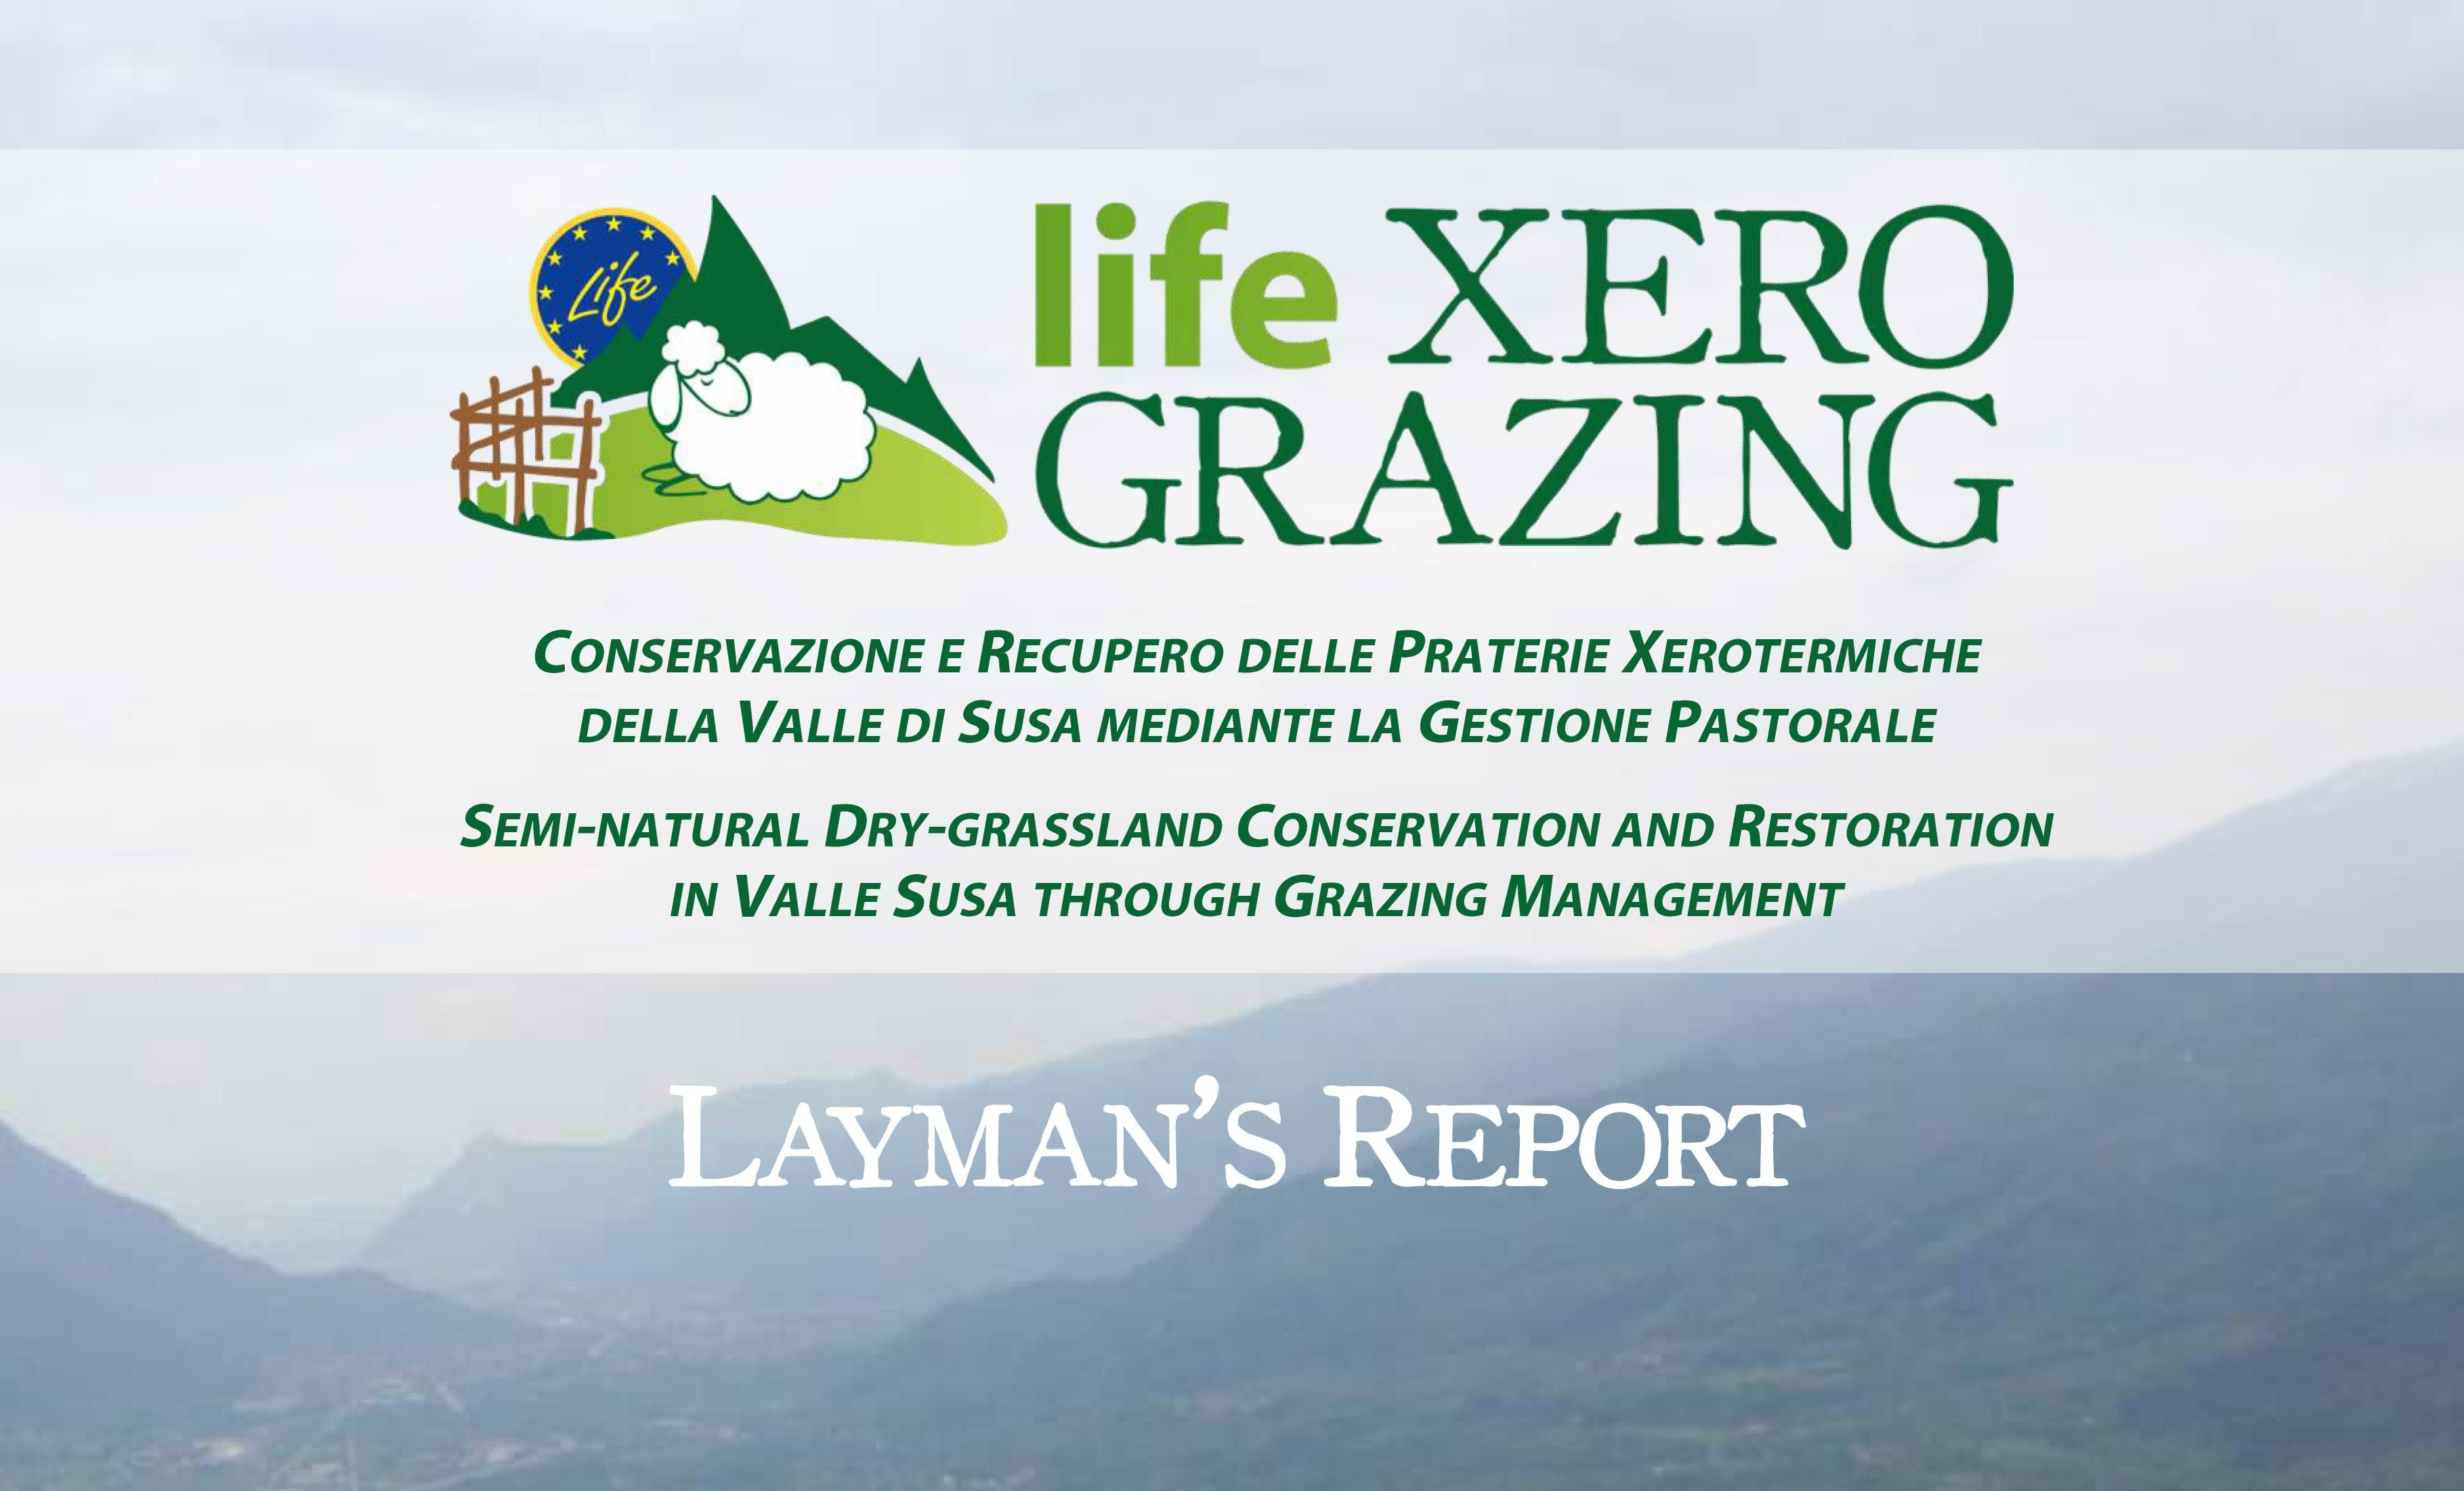 DOWNLOAD THE LAYMAN'S REPORT OF THE PROJECT